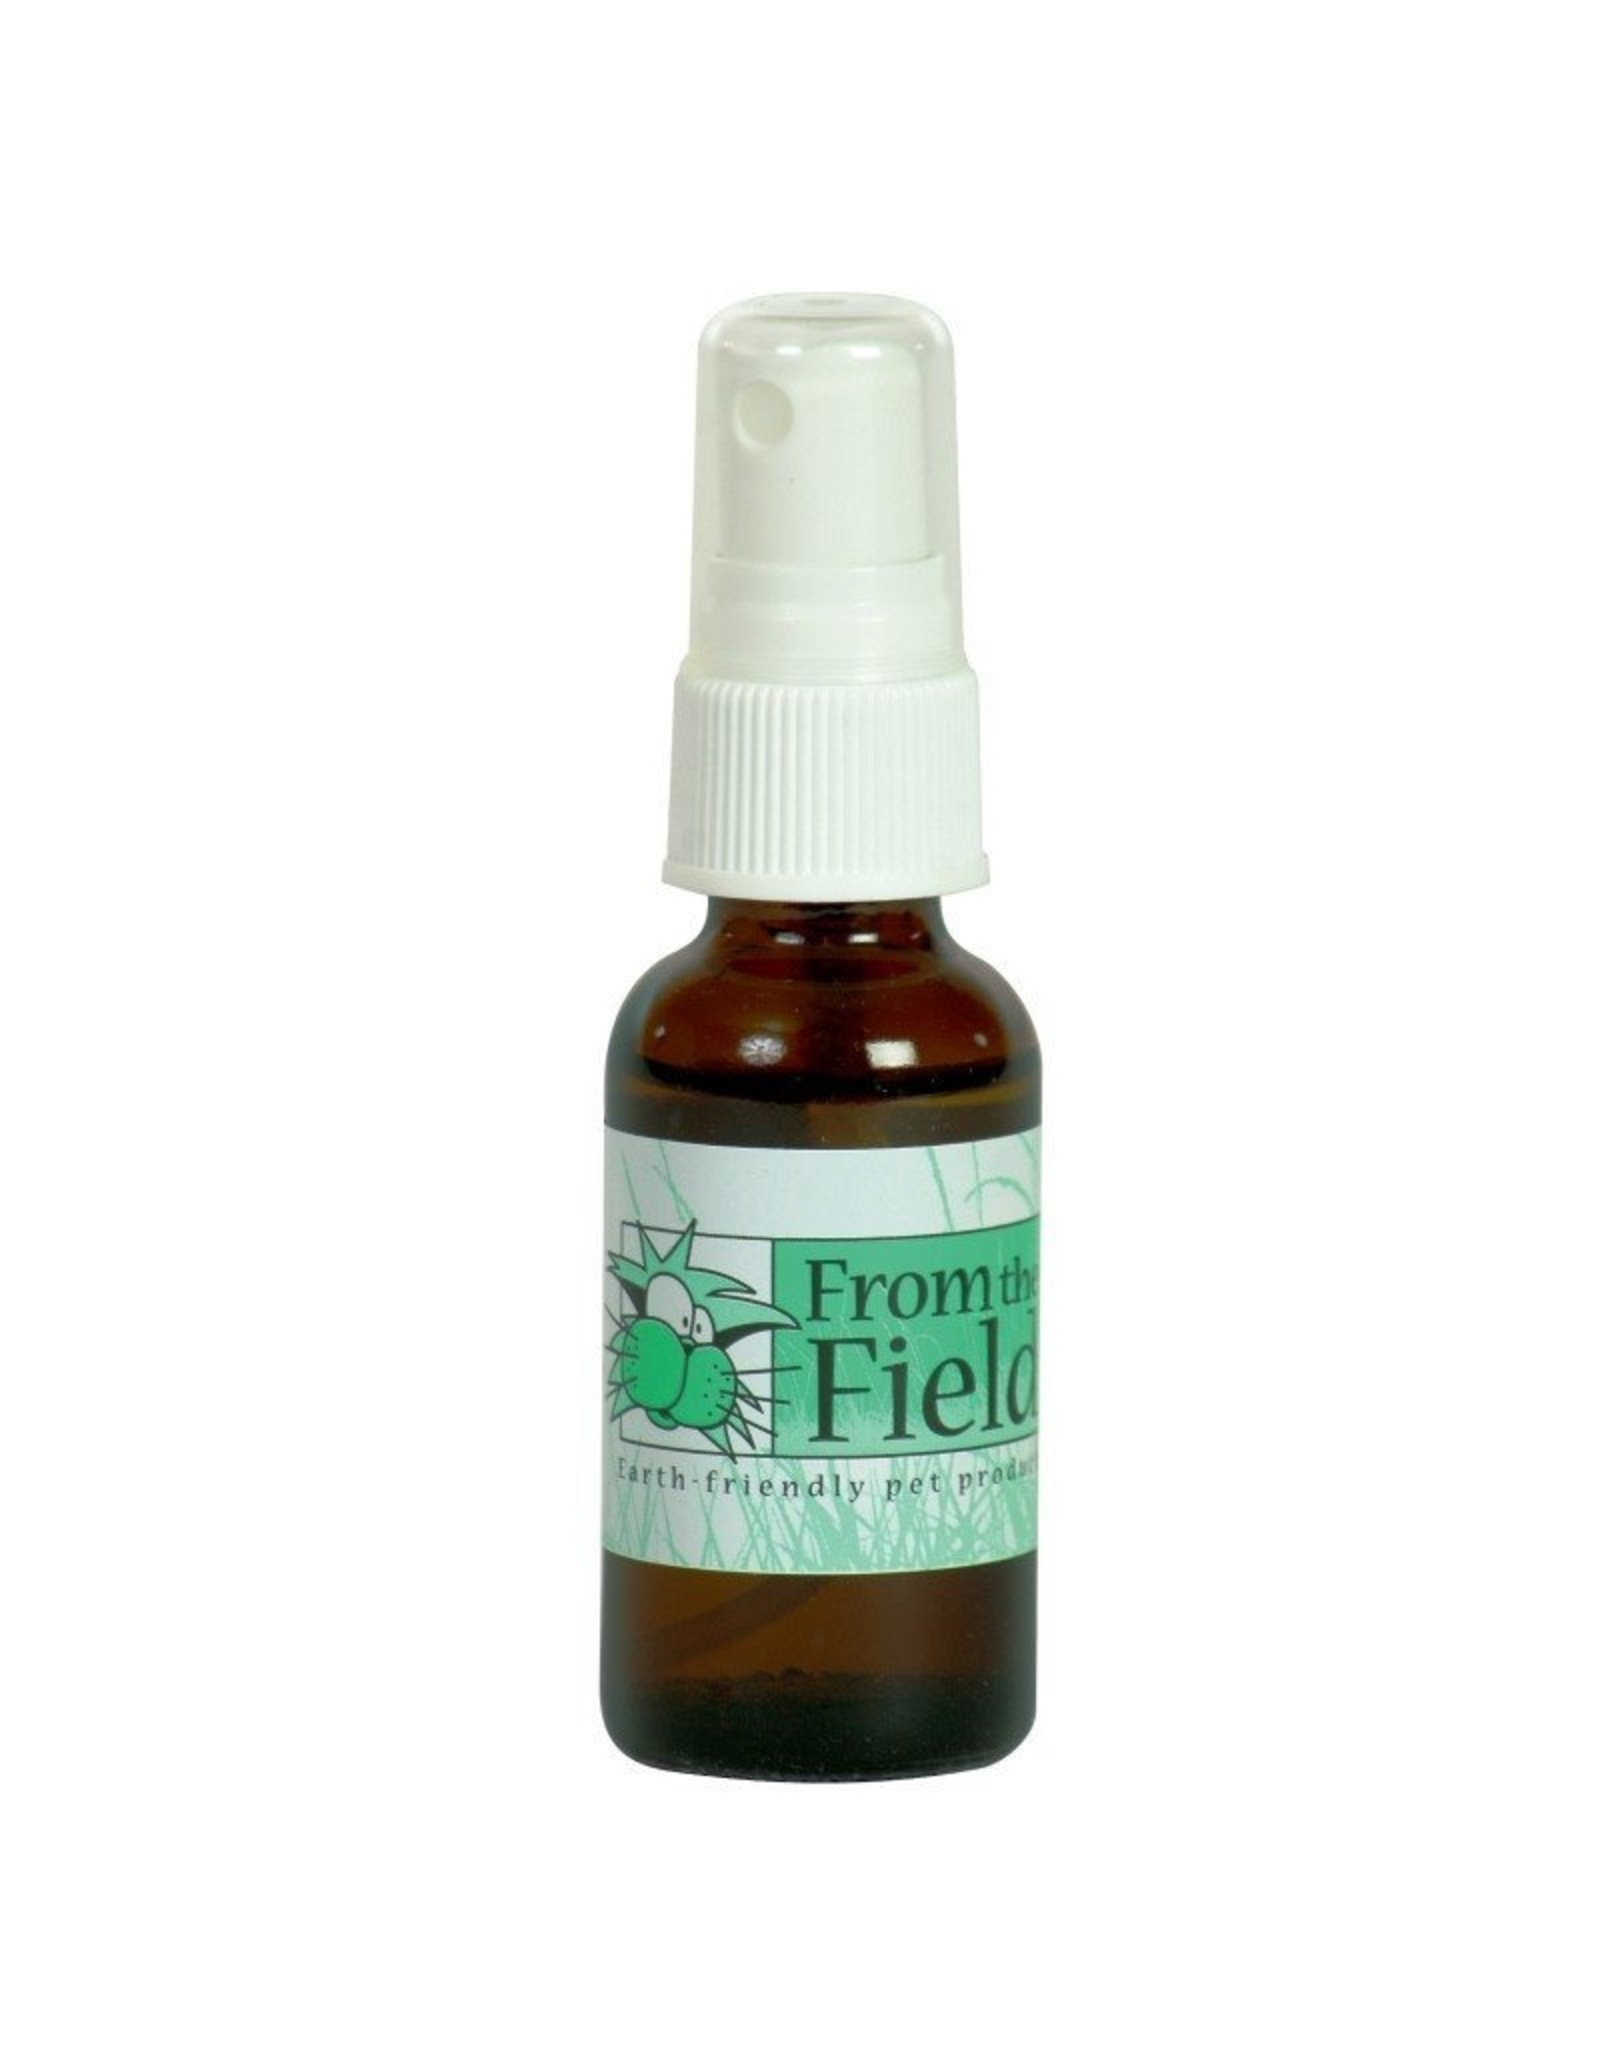 From The Field From the Field Catnip Oil Spray 1oz